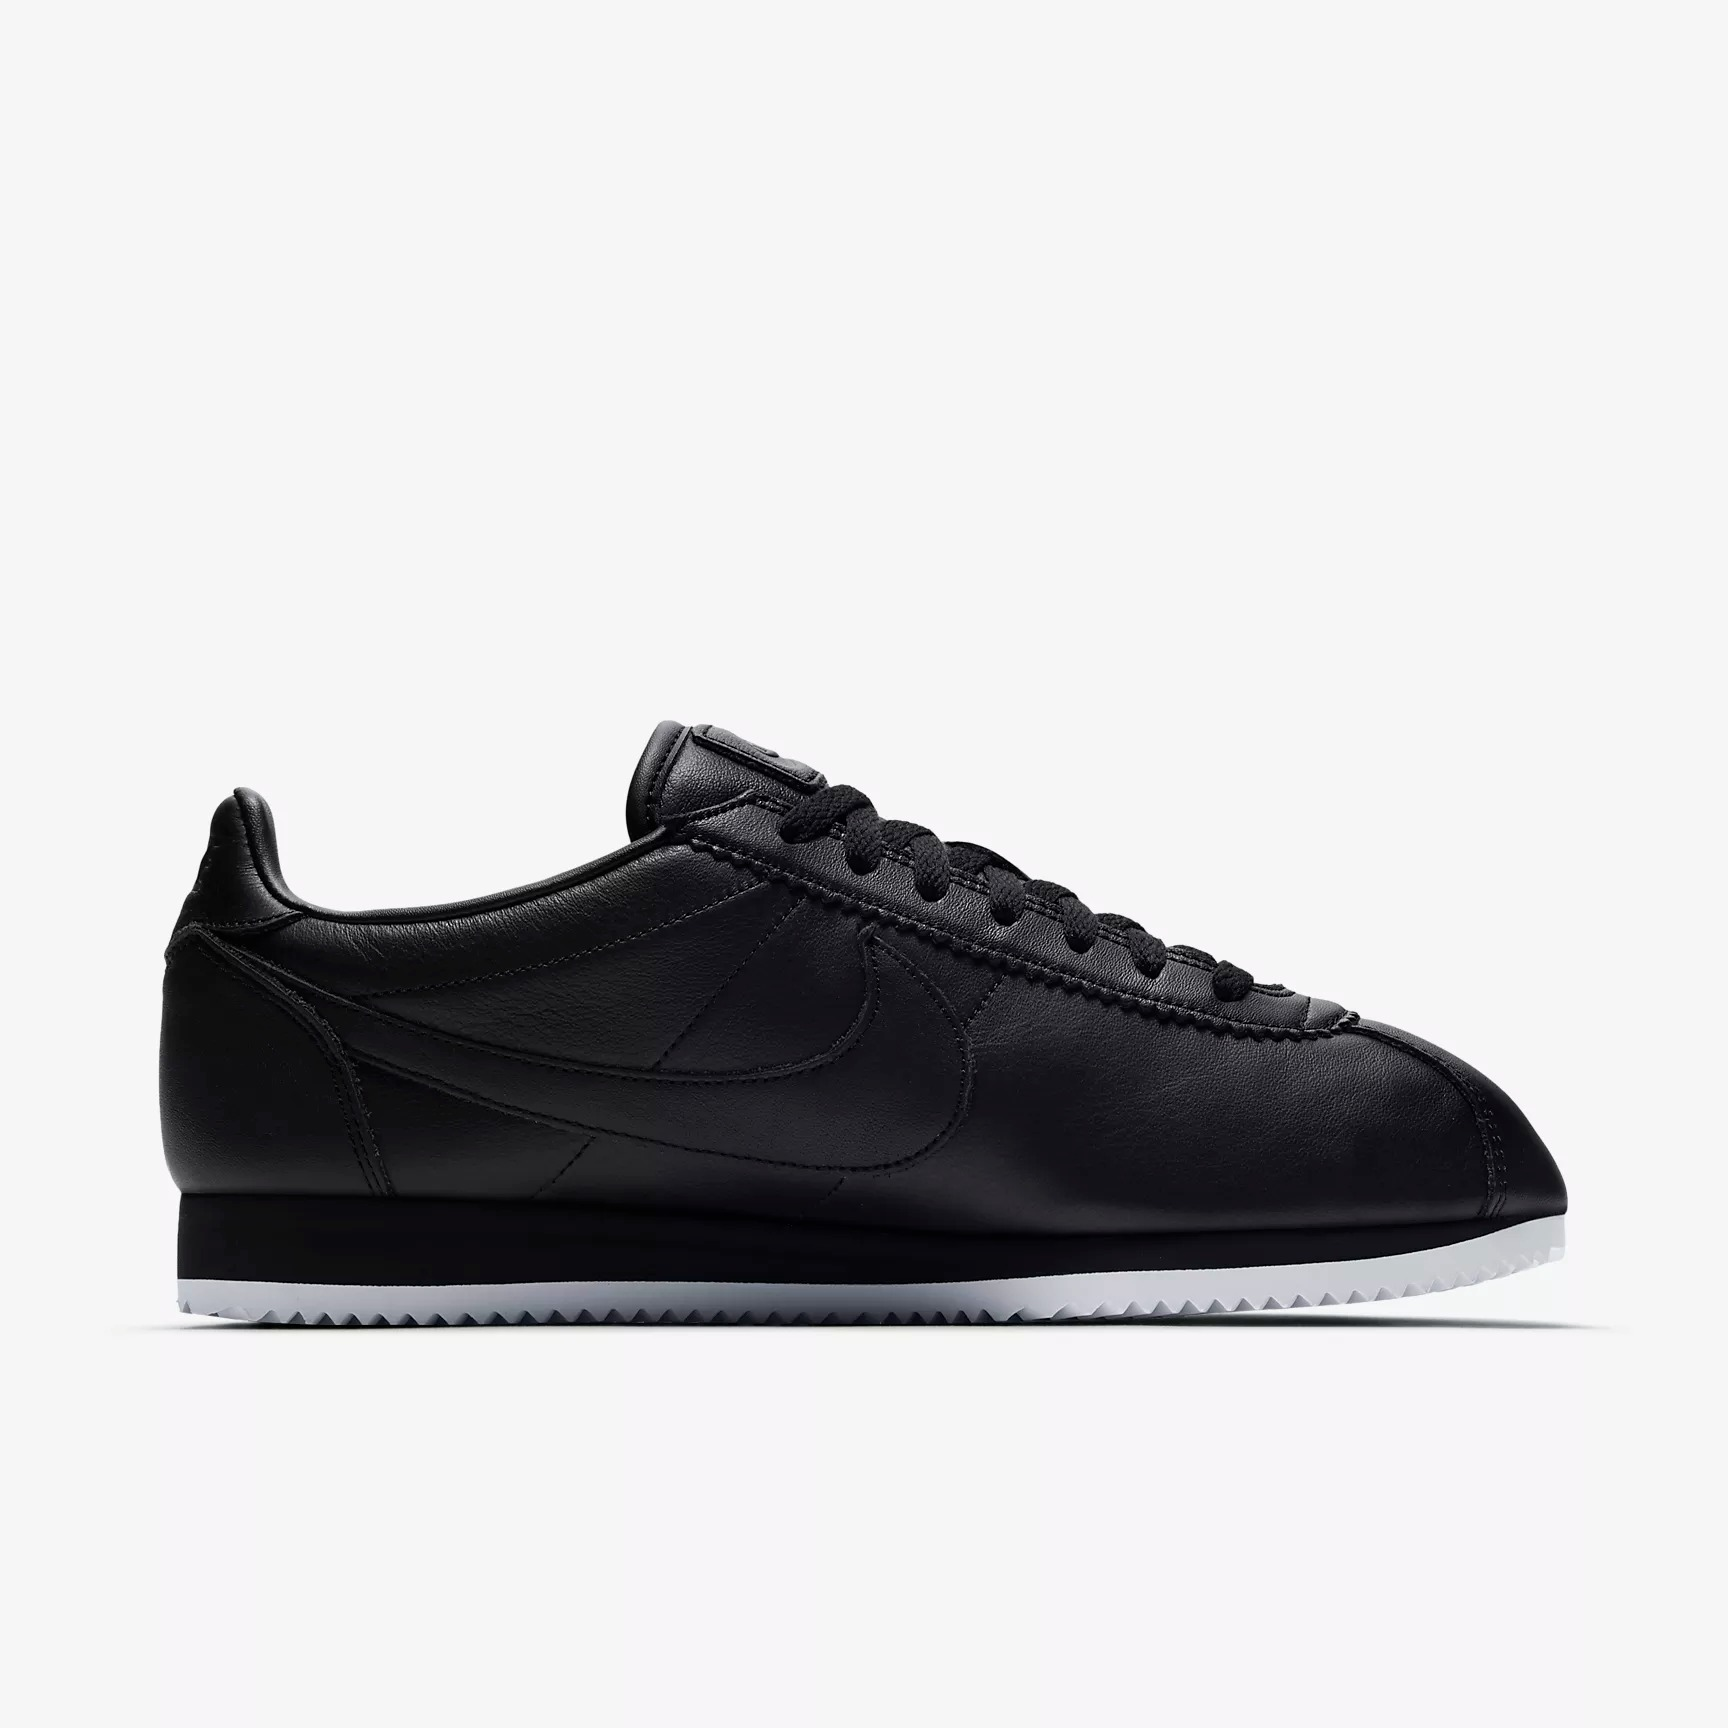 nike classic cortez premium sneakers sport shoes athletic shoes and sneakers. Black Bedroom Furniture Sets. Home Design Ideas